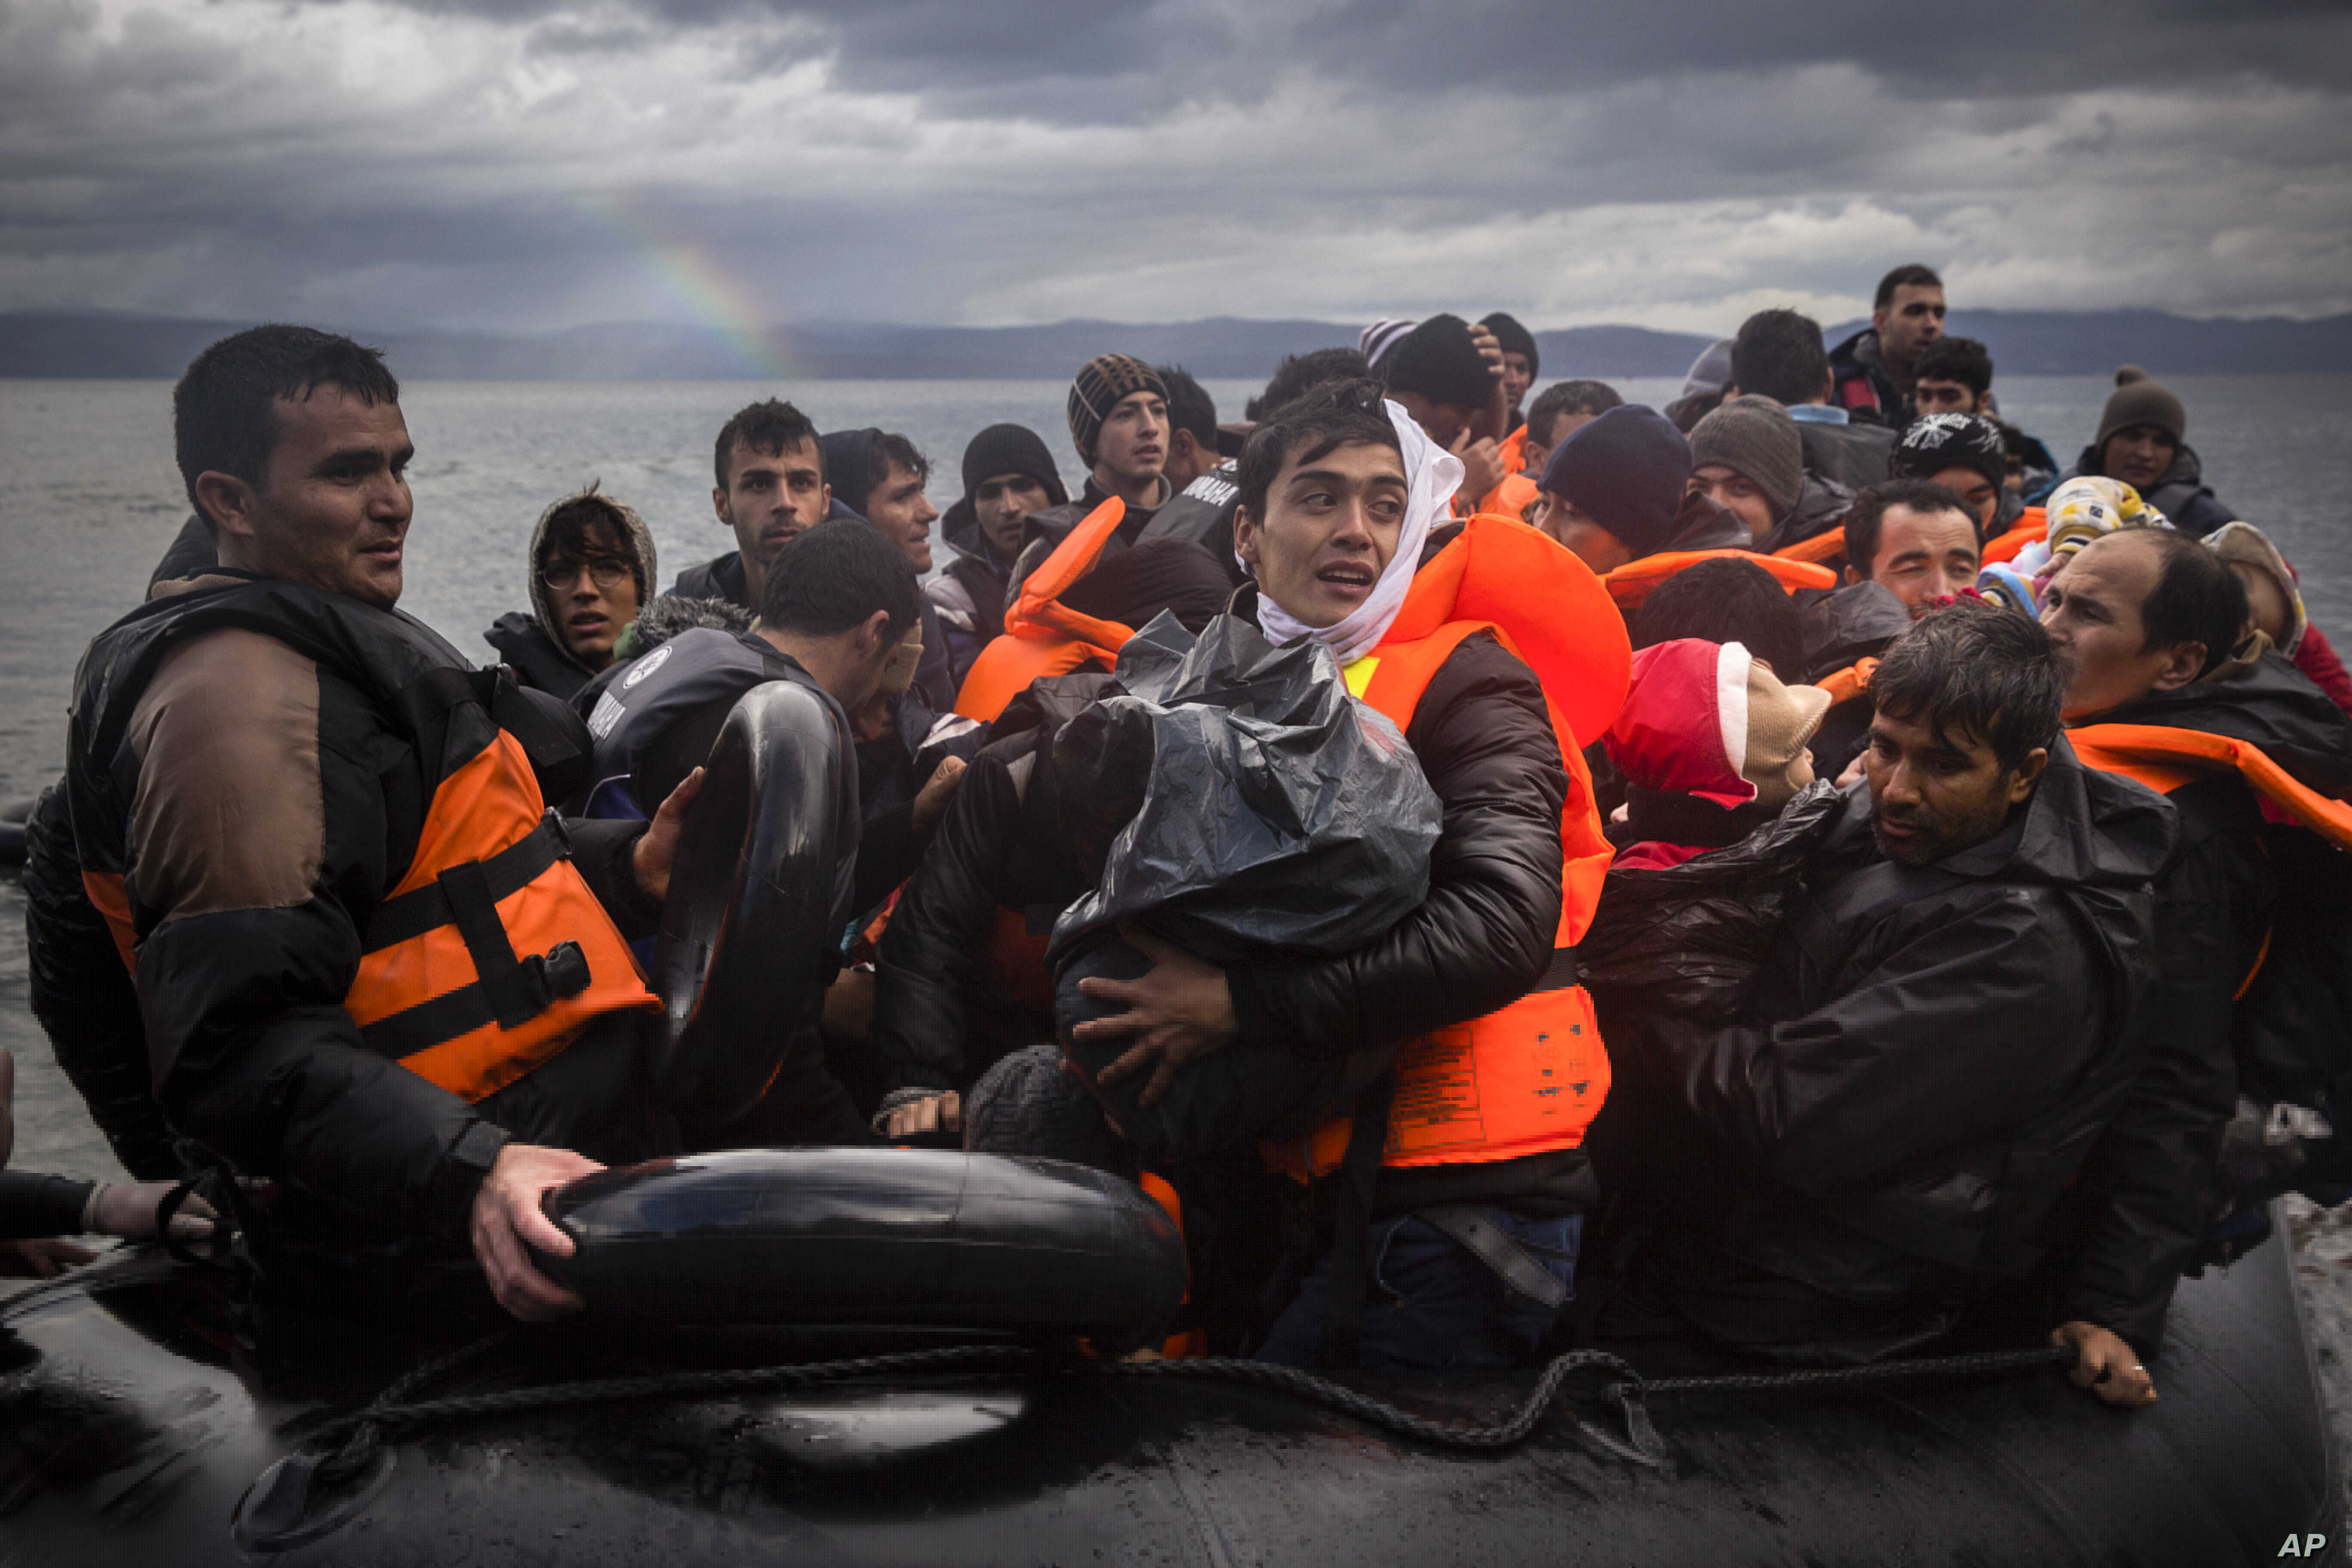 Refugees and migrants arrive on a beach after crossing a part of the Aegean sea from the Turkey's coast to the Greek island of Lesbos, Nov. 28, 2015.